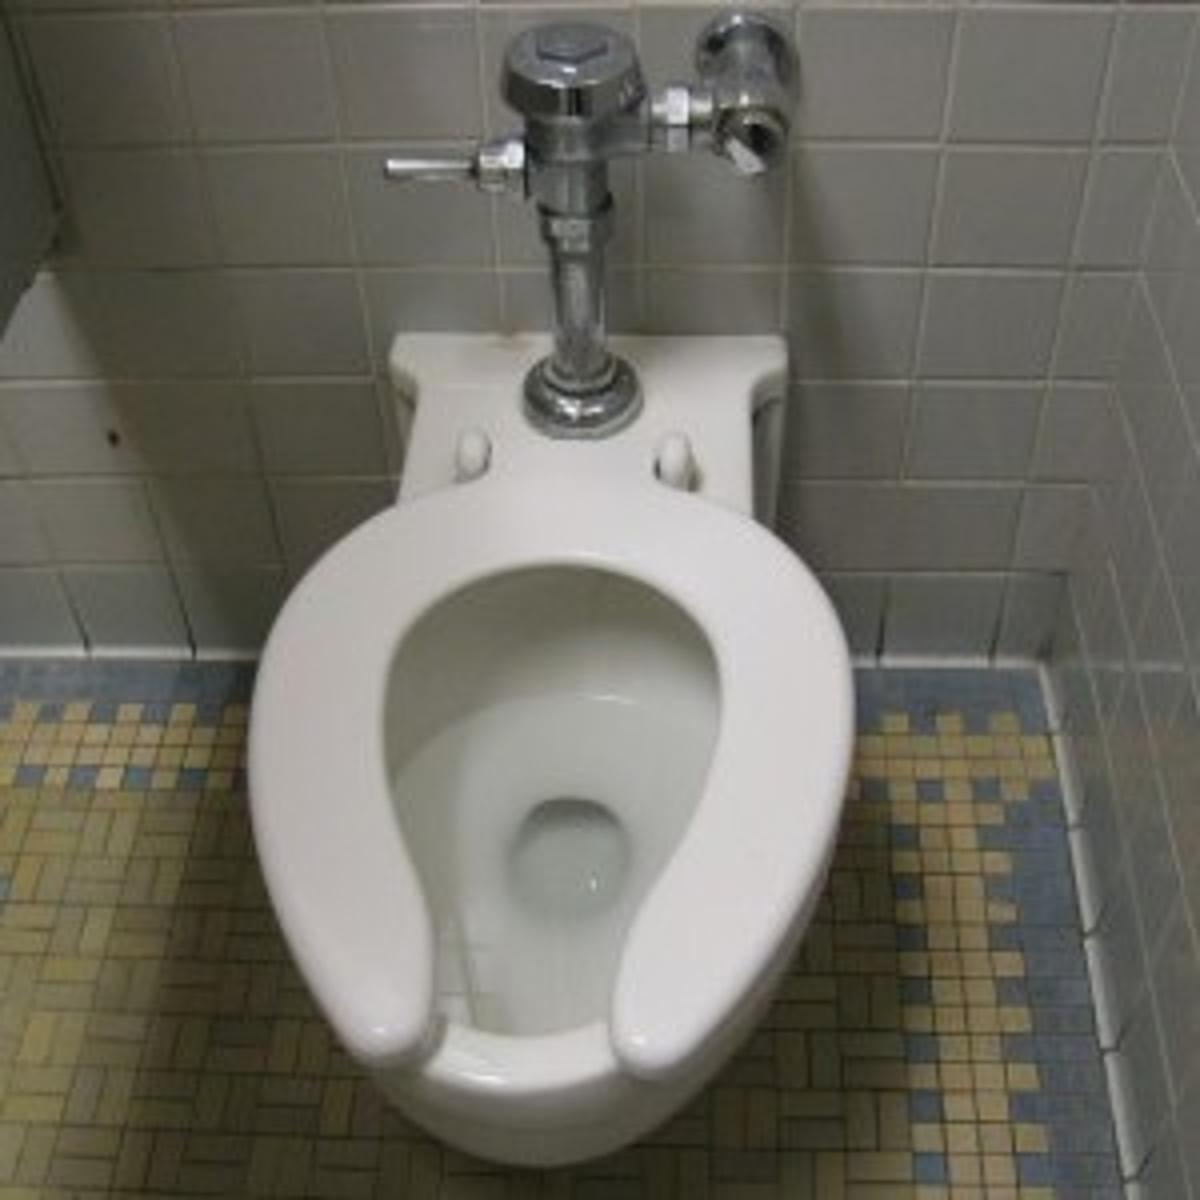 3 000 To Replace A Single School Toilet Local Education Madison Com